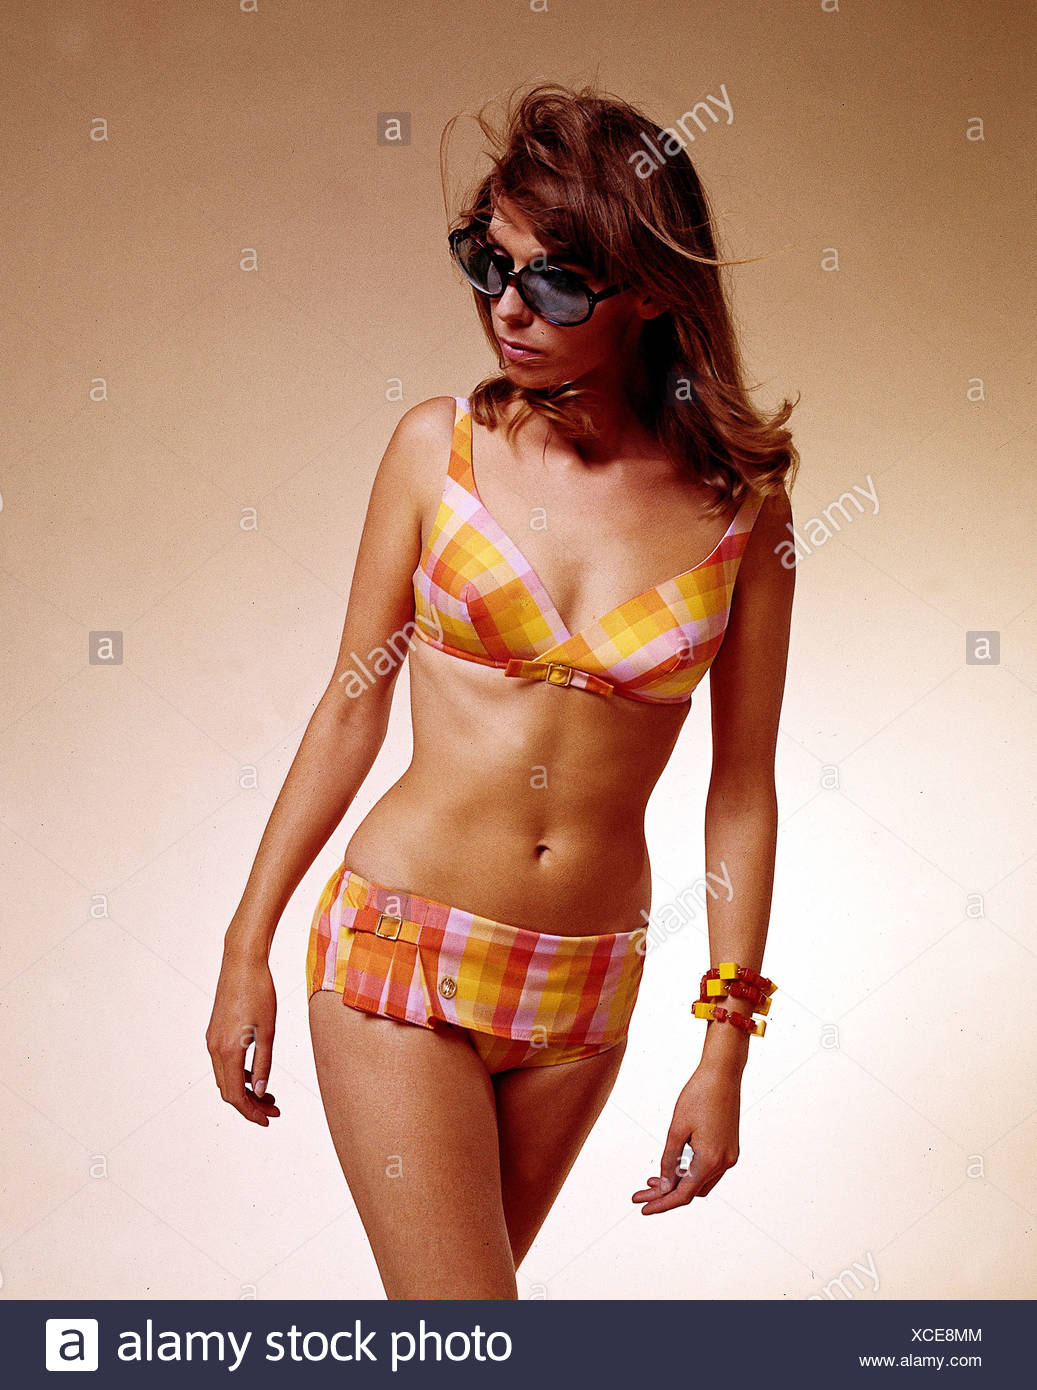 fashion, 1960s, model, wearing bikini, chequered, half length, studio, clothing, women, bathing suit, two-piece, two piece, 60s, ladieswear, woman, bikini, shades, sun glasses, sunglasses, , Additional-Rights-Clearances-NA - Stock Image